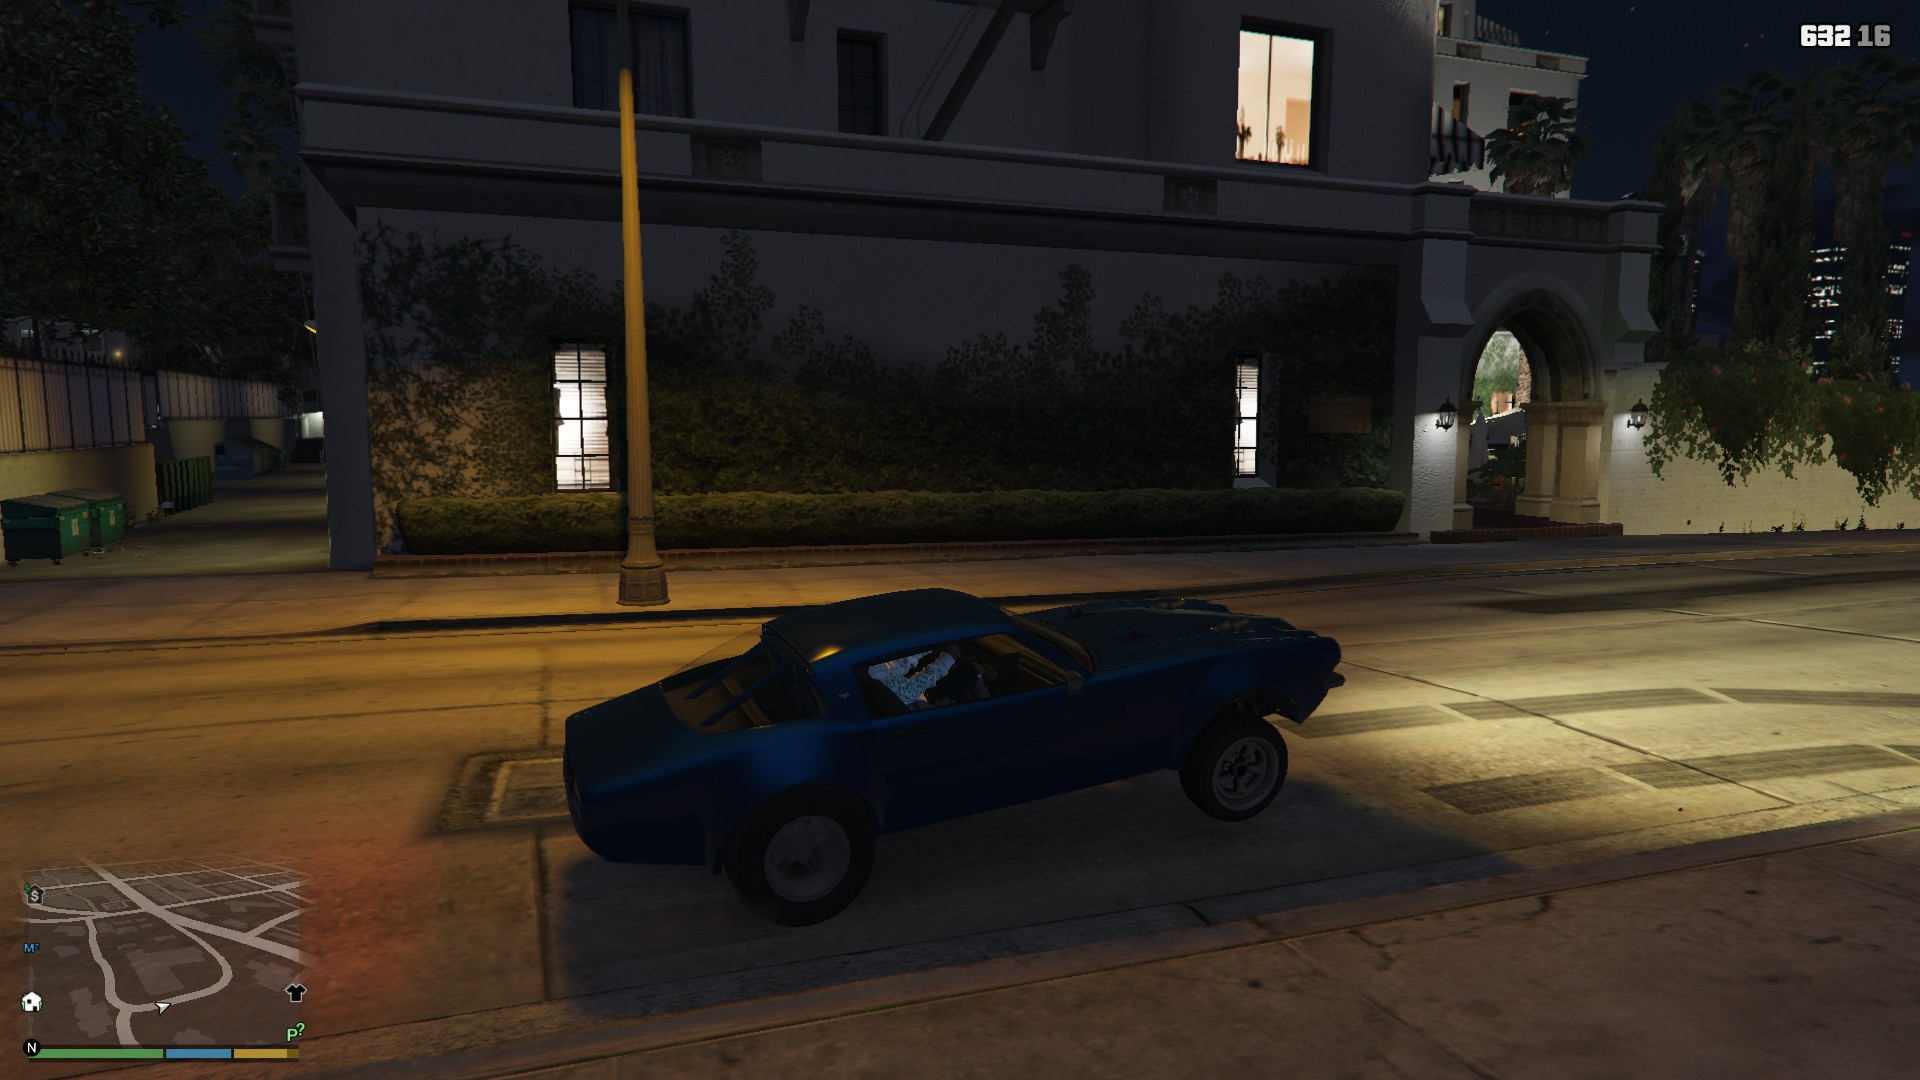 Twin Turbo Nightshade GTA5 Mods (2)